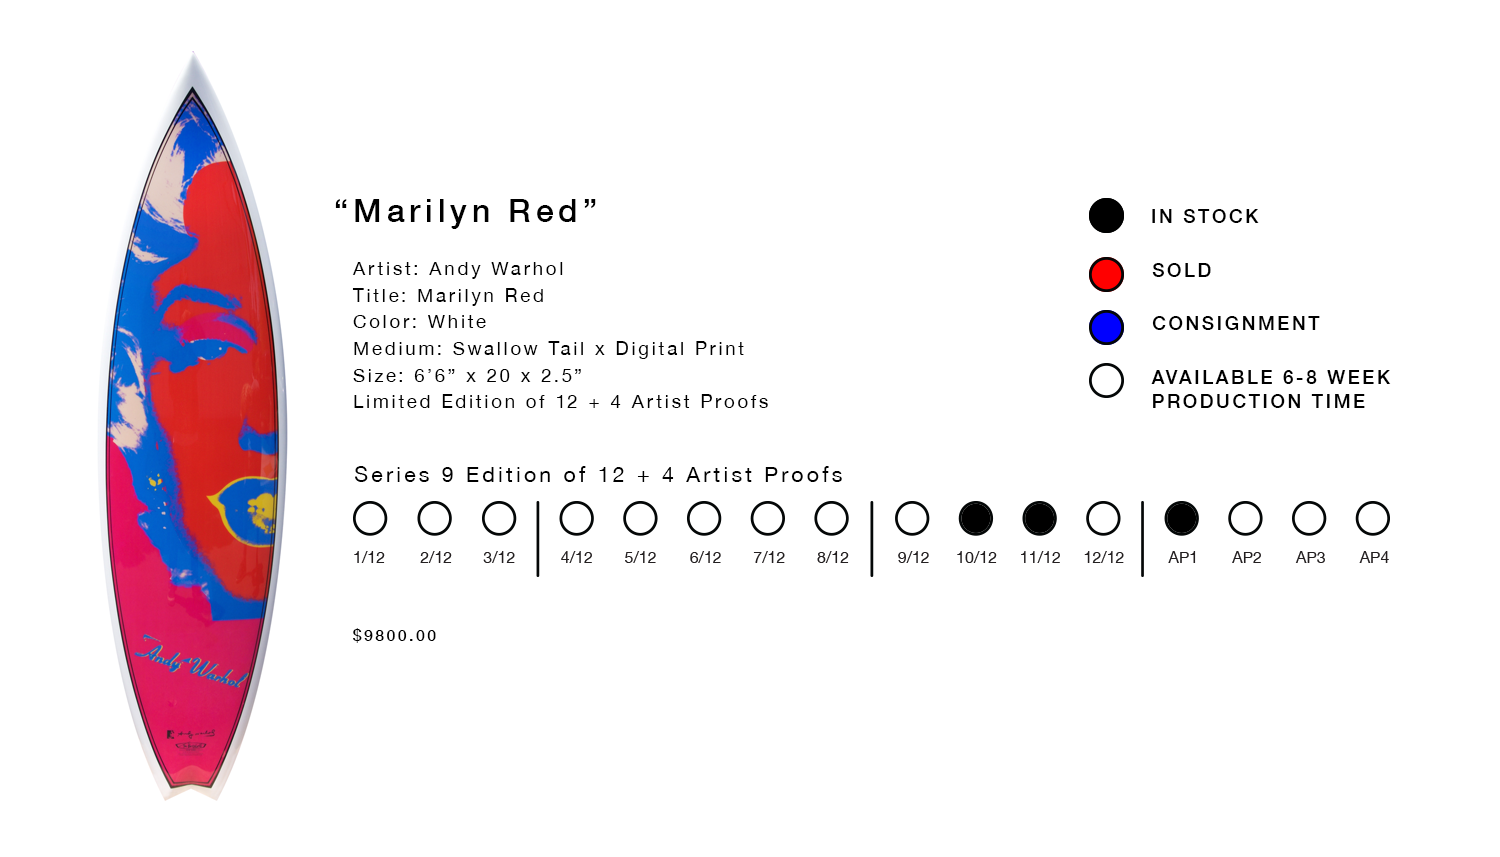 MARILYN_RED_AVAIL.png